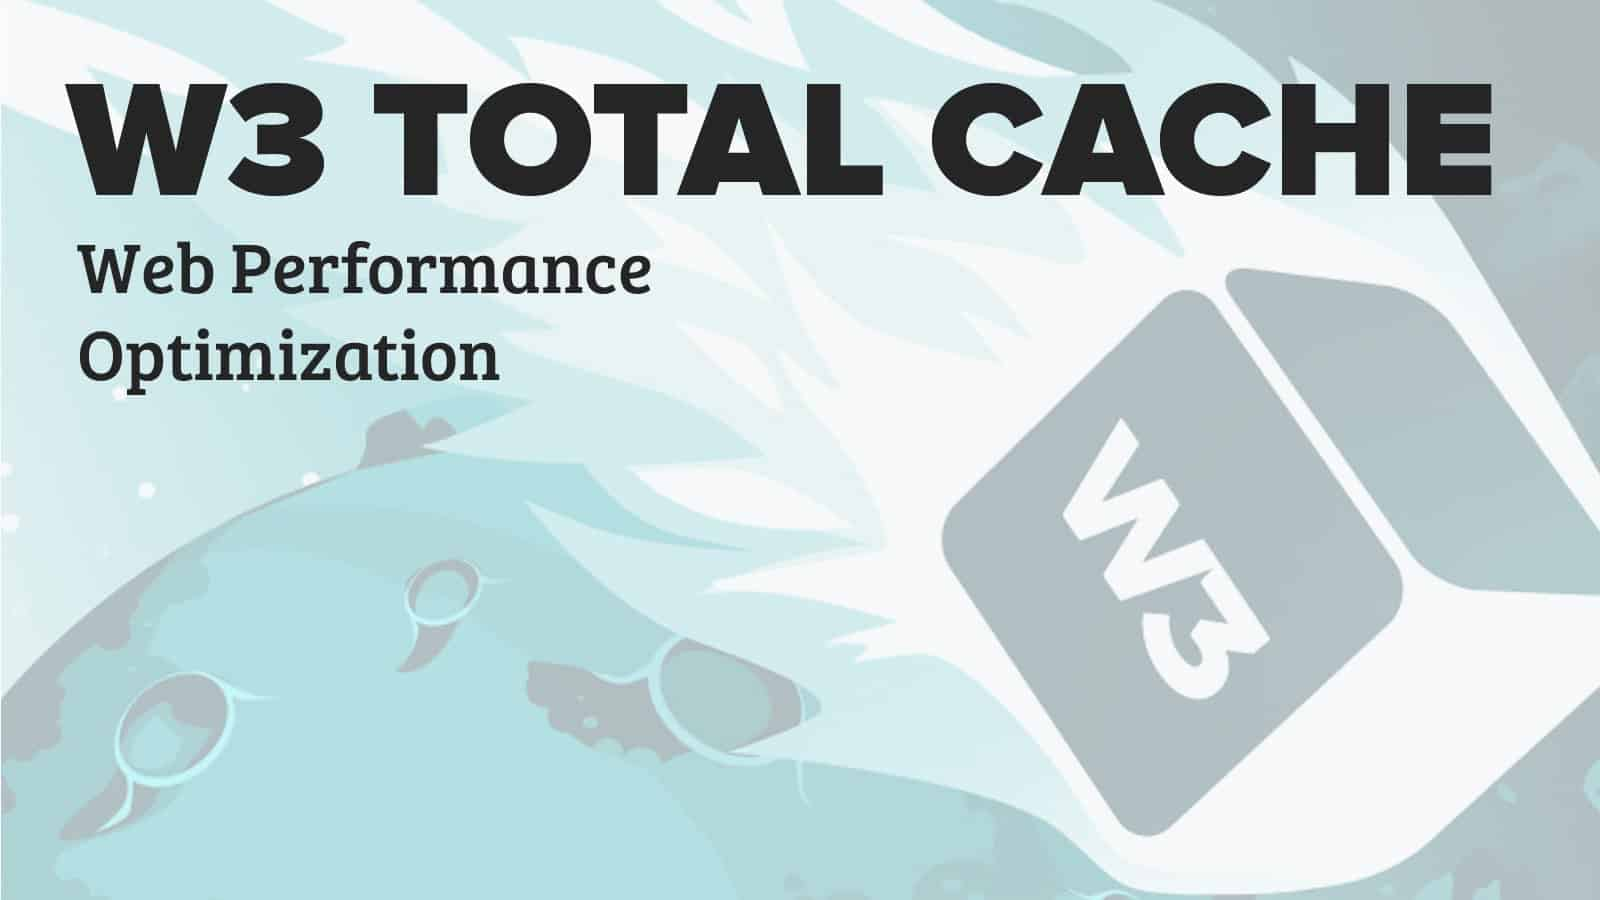 W3 Total Cache Configuration – Guide